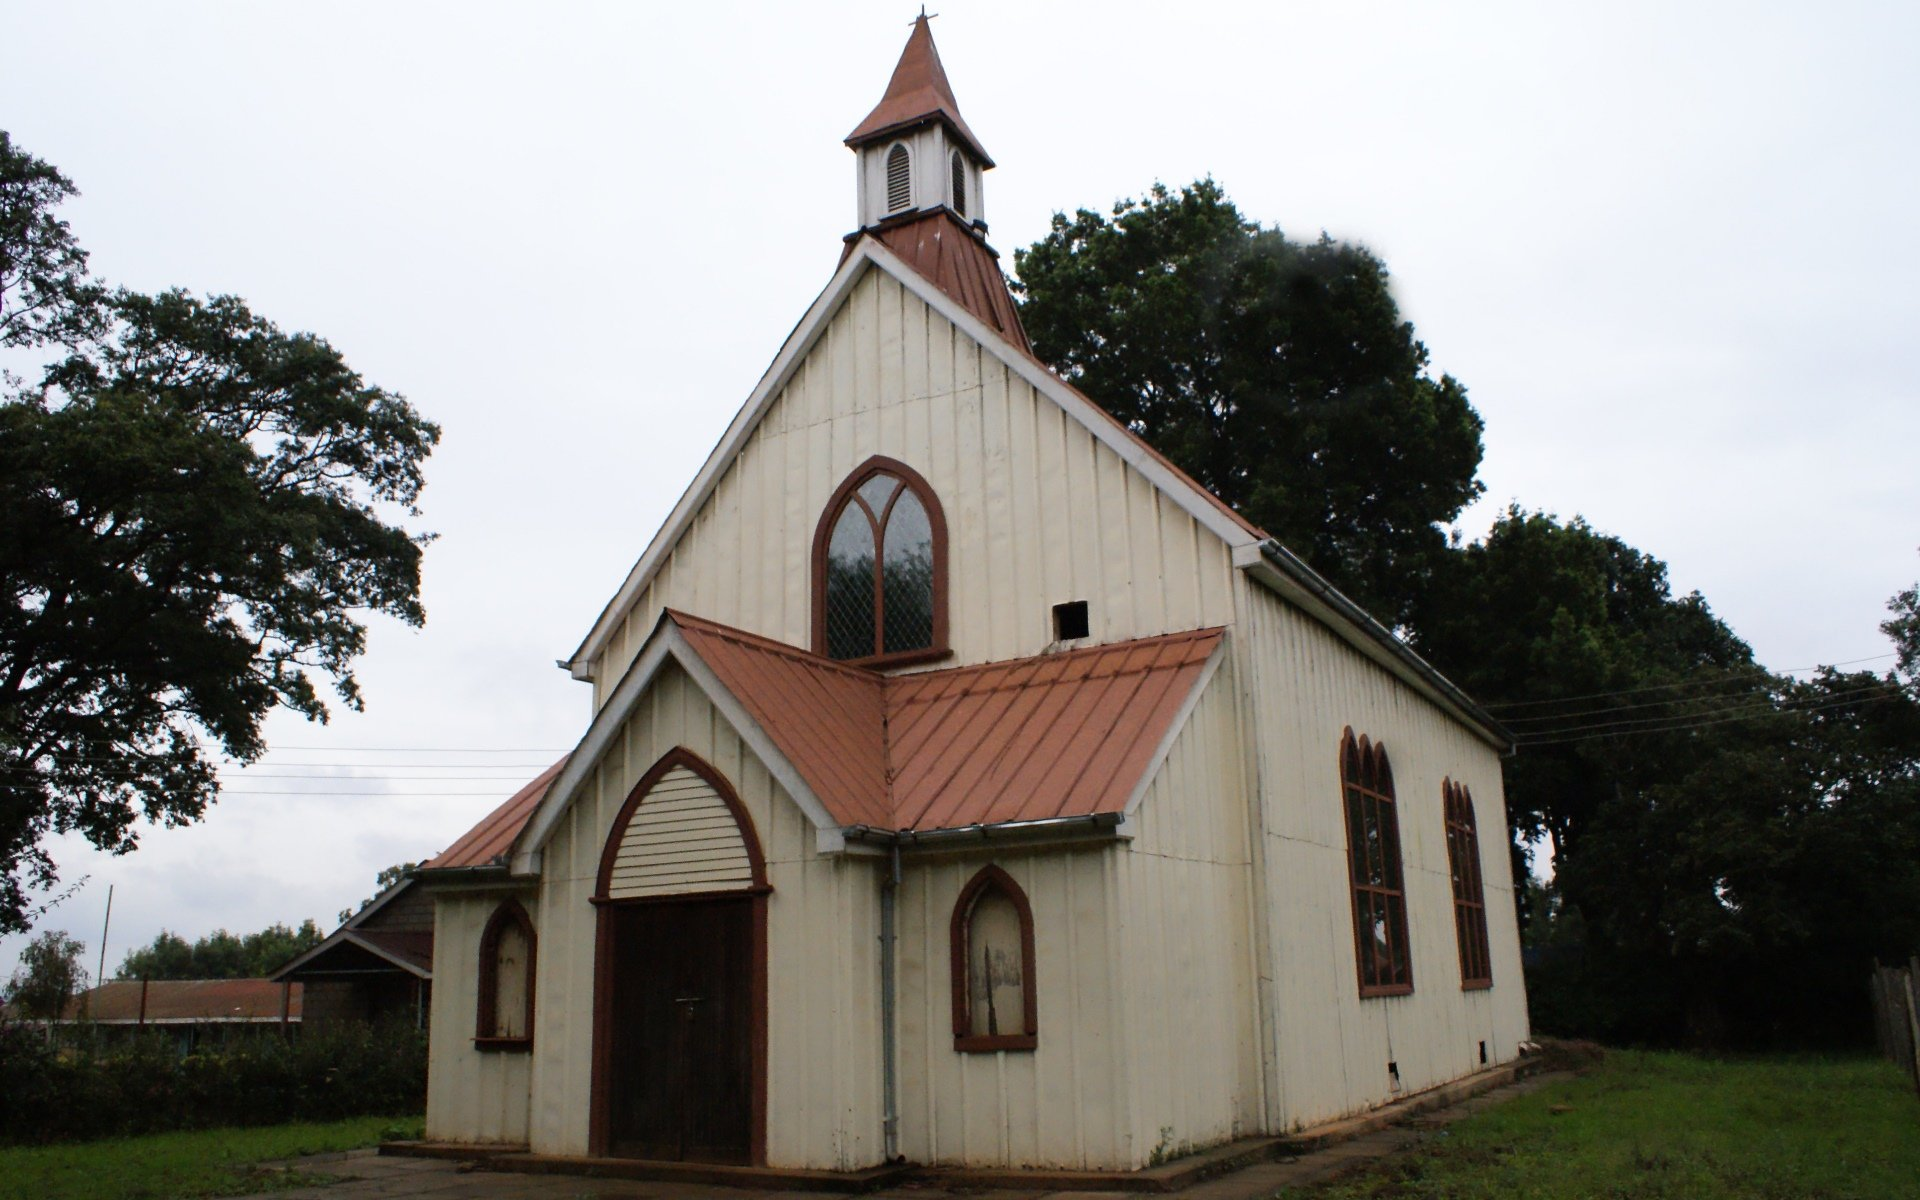 The Scott-Watson Memorial Chapel adjacent to the Church of the Torch is named after him